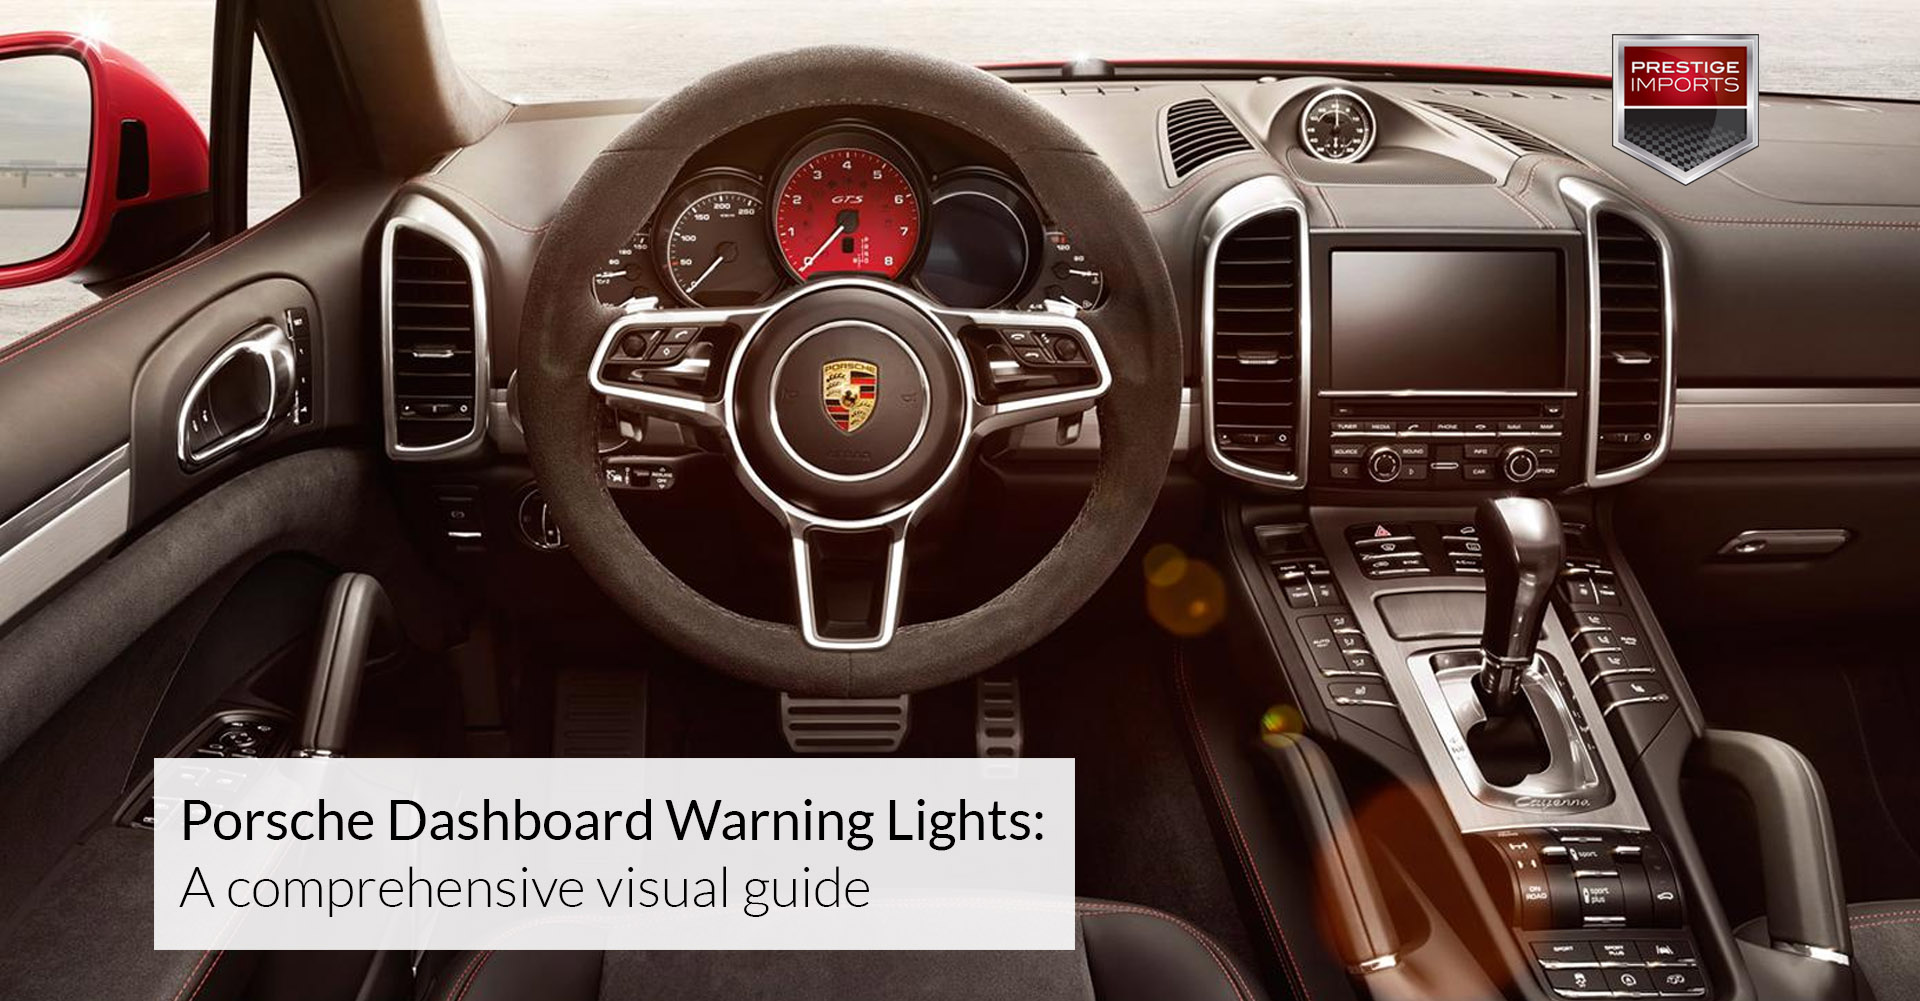 2004 Audi S4 >> Porsche Dashboard Warning Lights: A comprehensive visual guide